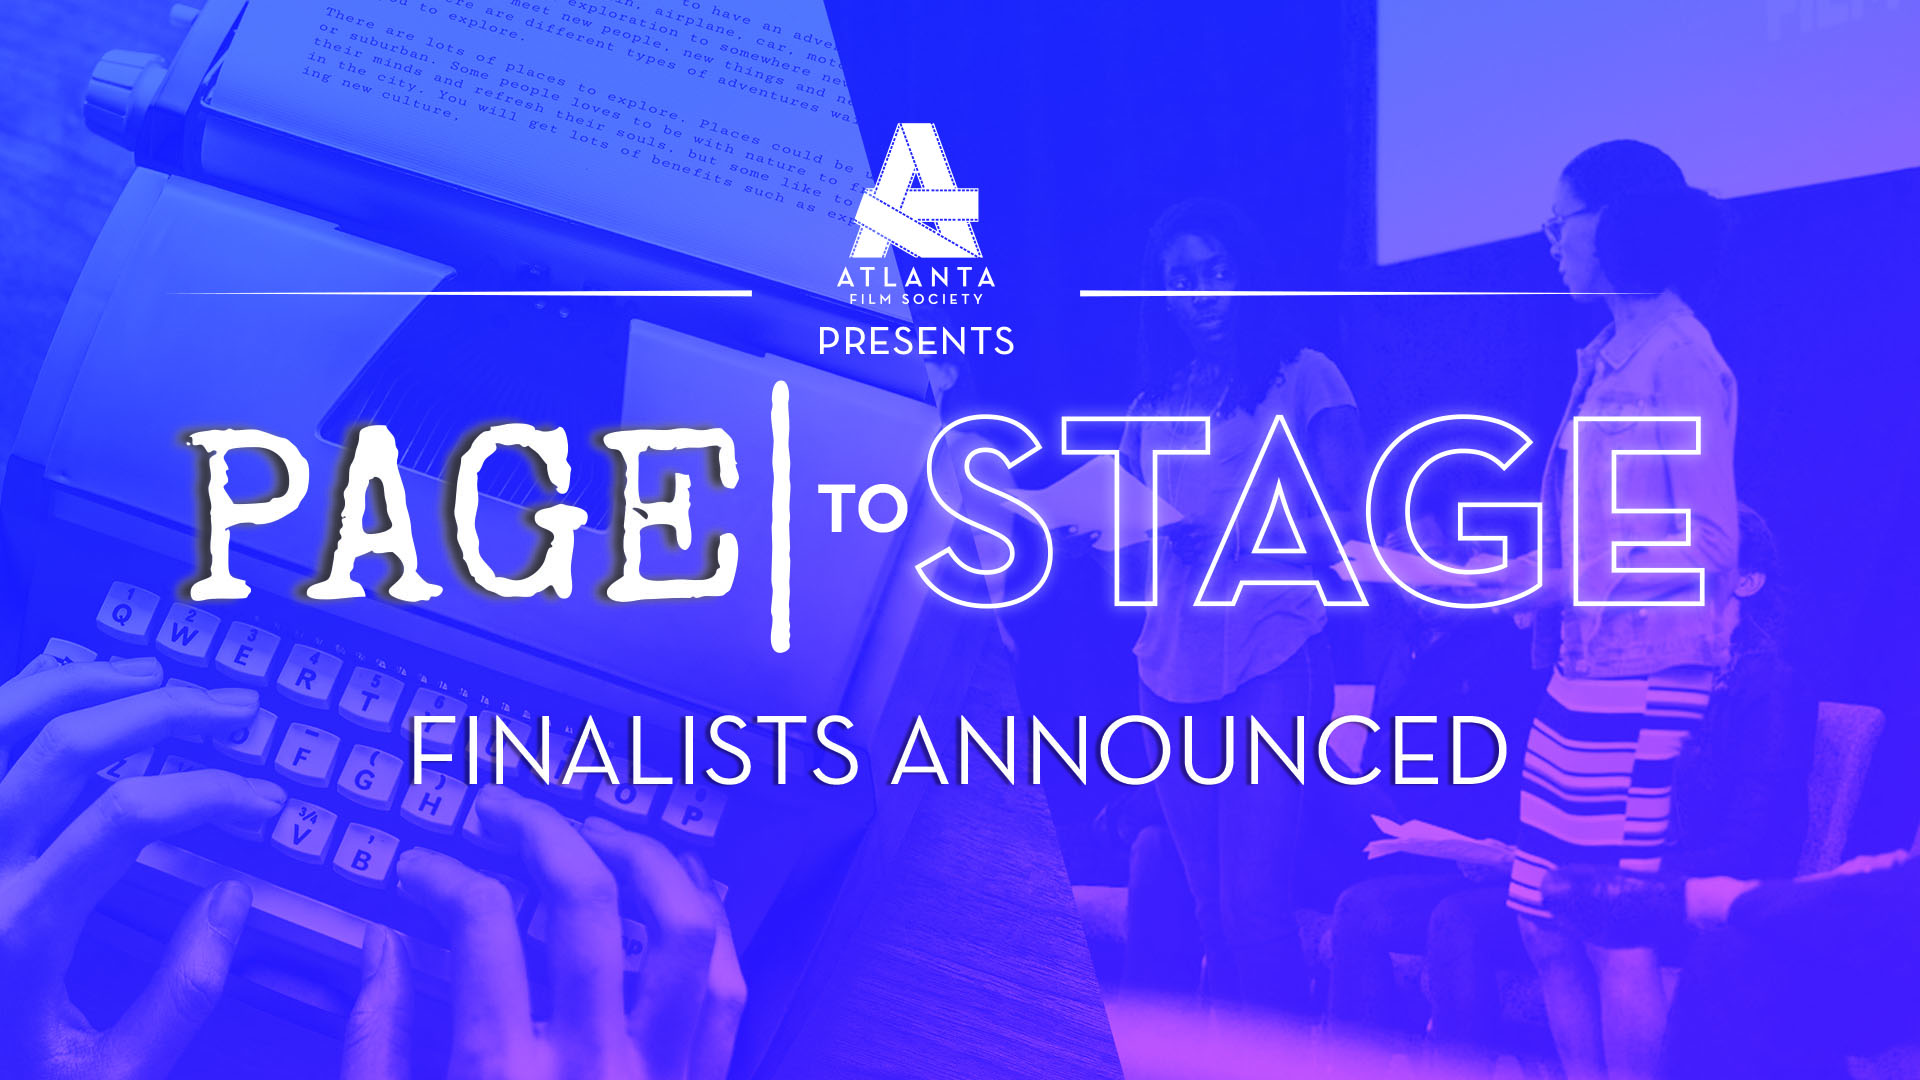 Page to Stage FinalistAnnounced.jpg